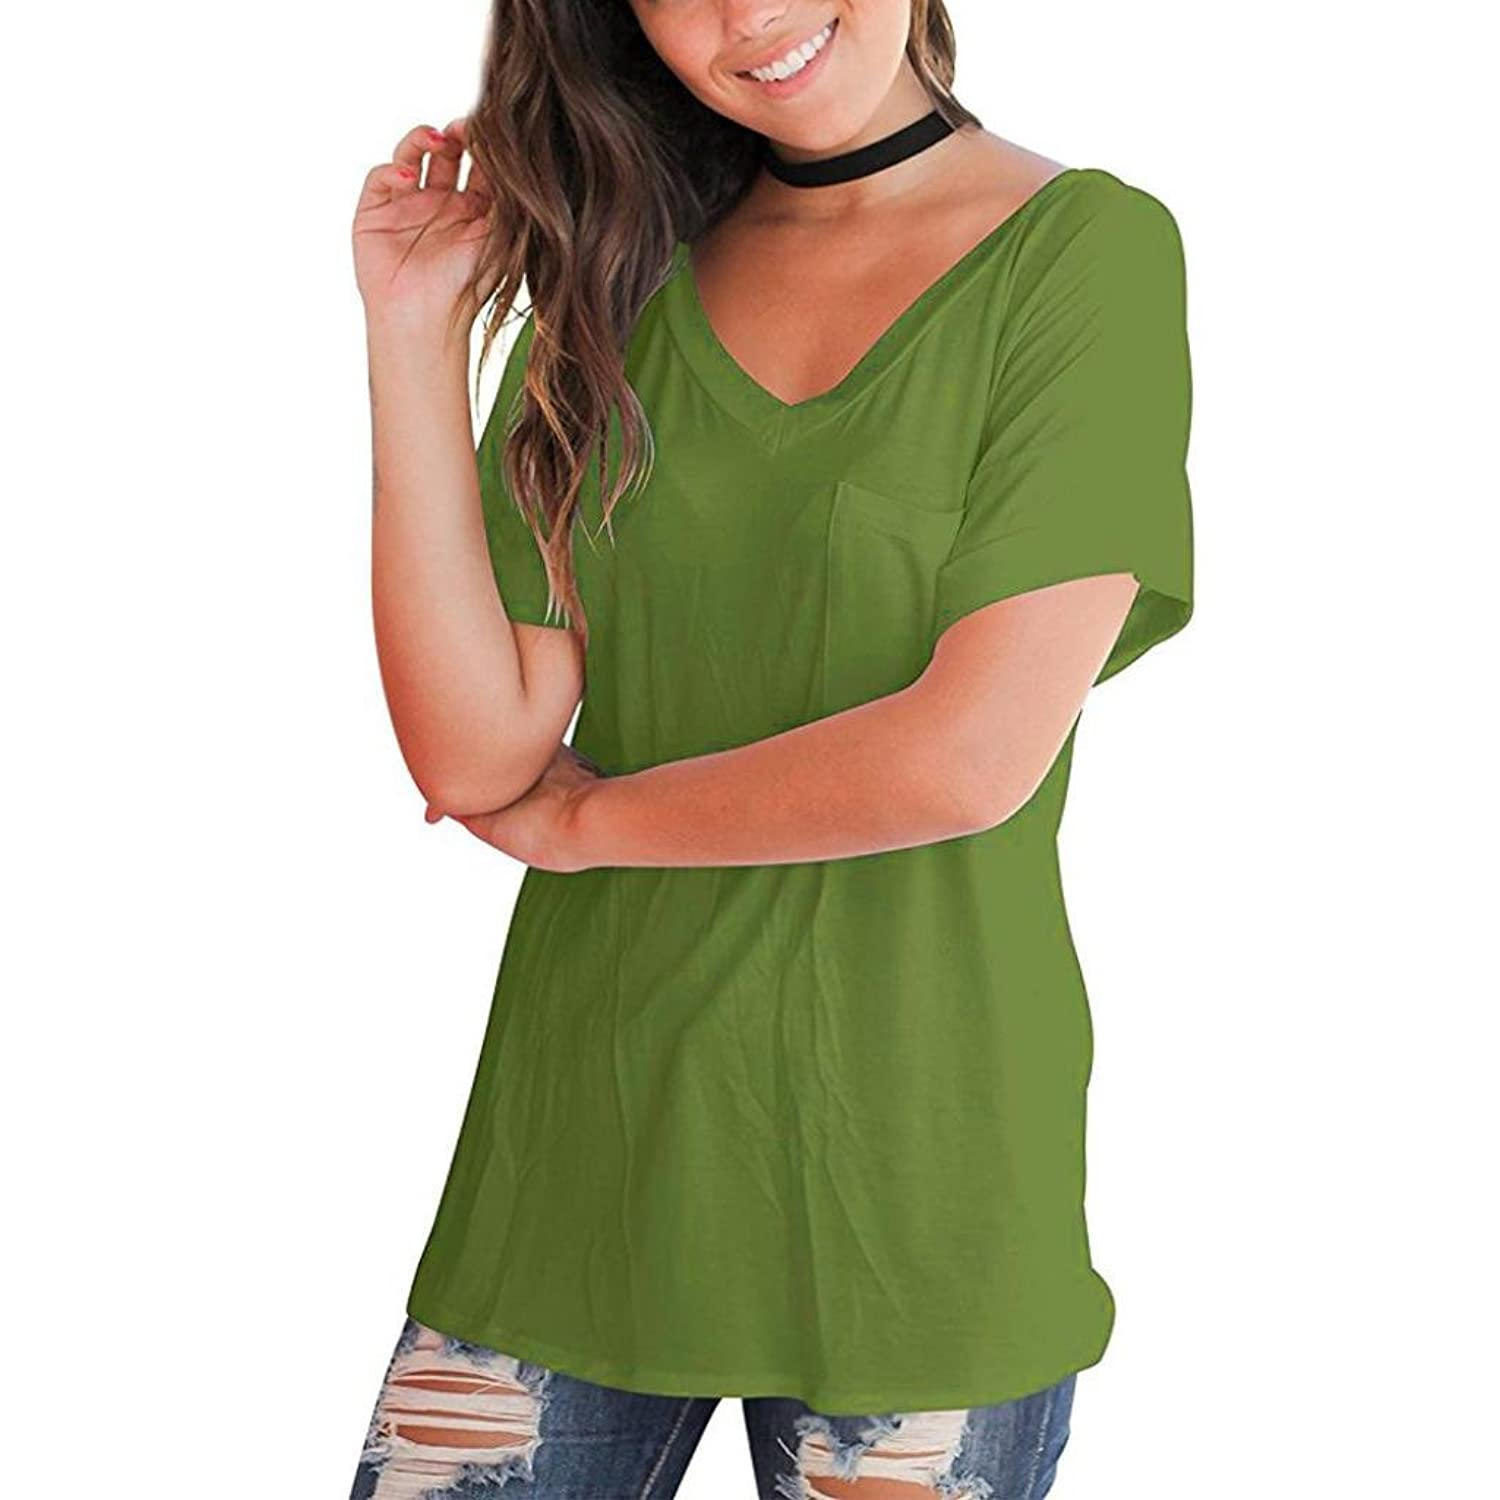 25d323e246 Top 10 wholesale 2 In 1 Shirt Jumper Womens - Chinabrands.com